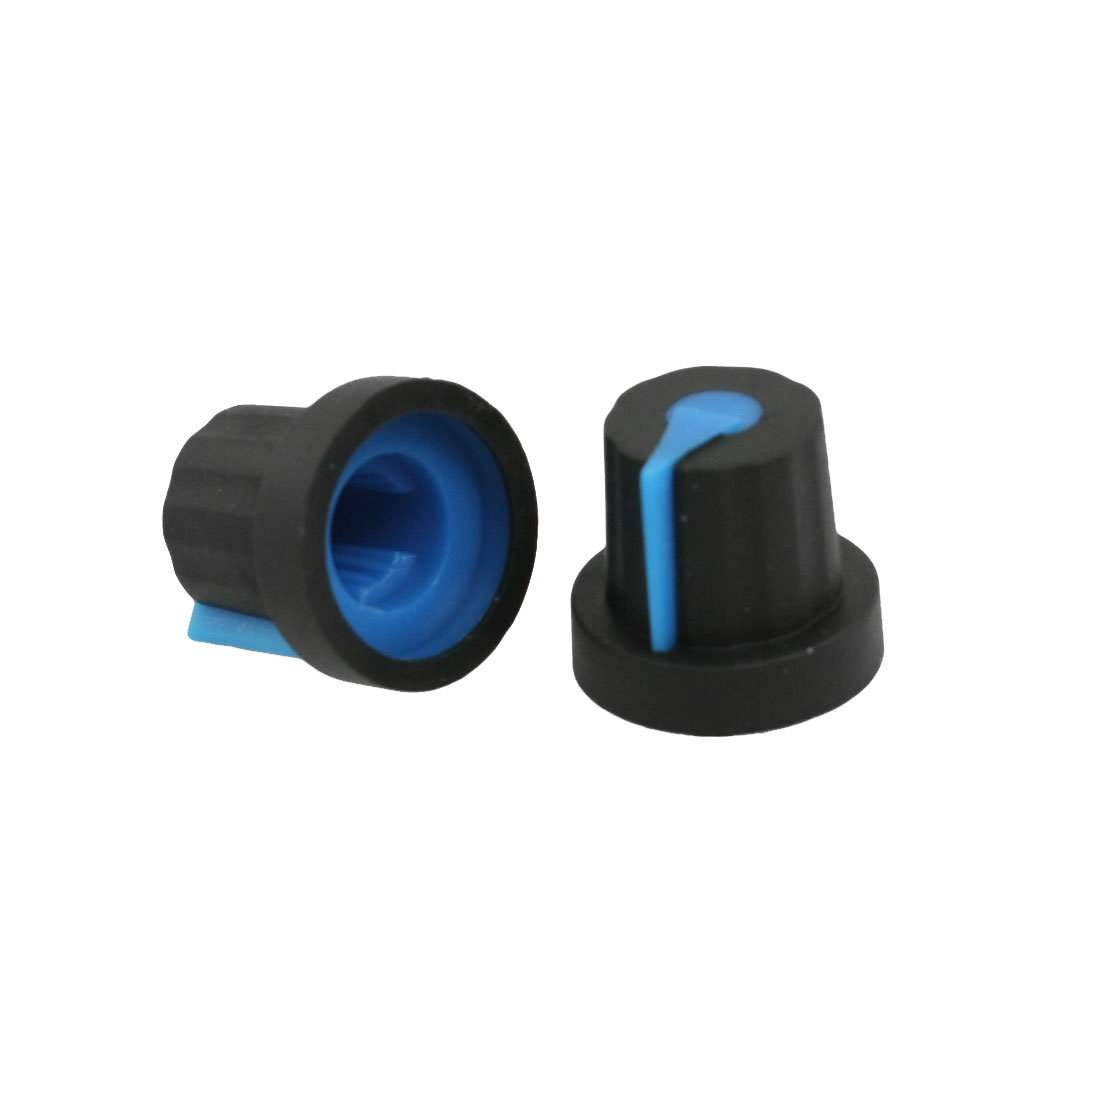 5 Pcs 6mm Split Shaft Insert Dia Blue Mark Black Potentiometer Knobs Caps